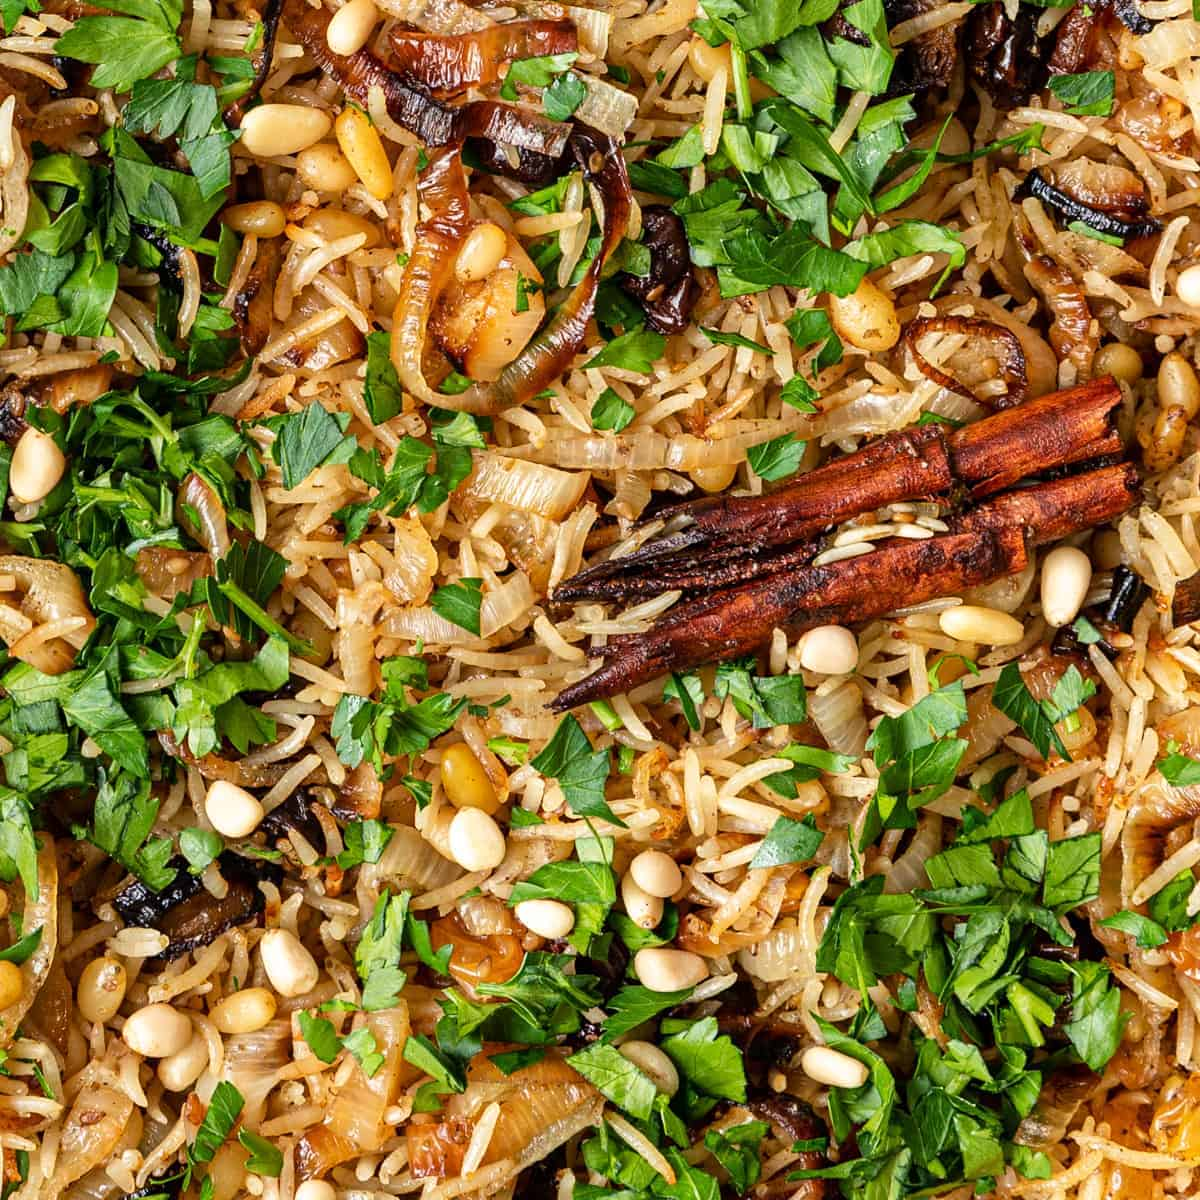 close up of herbs and spices in baked basmati rice